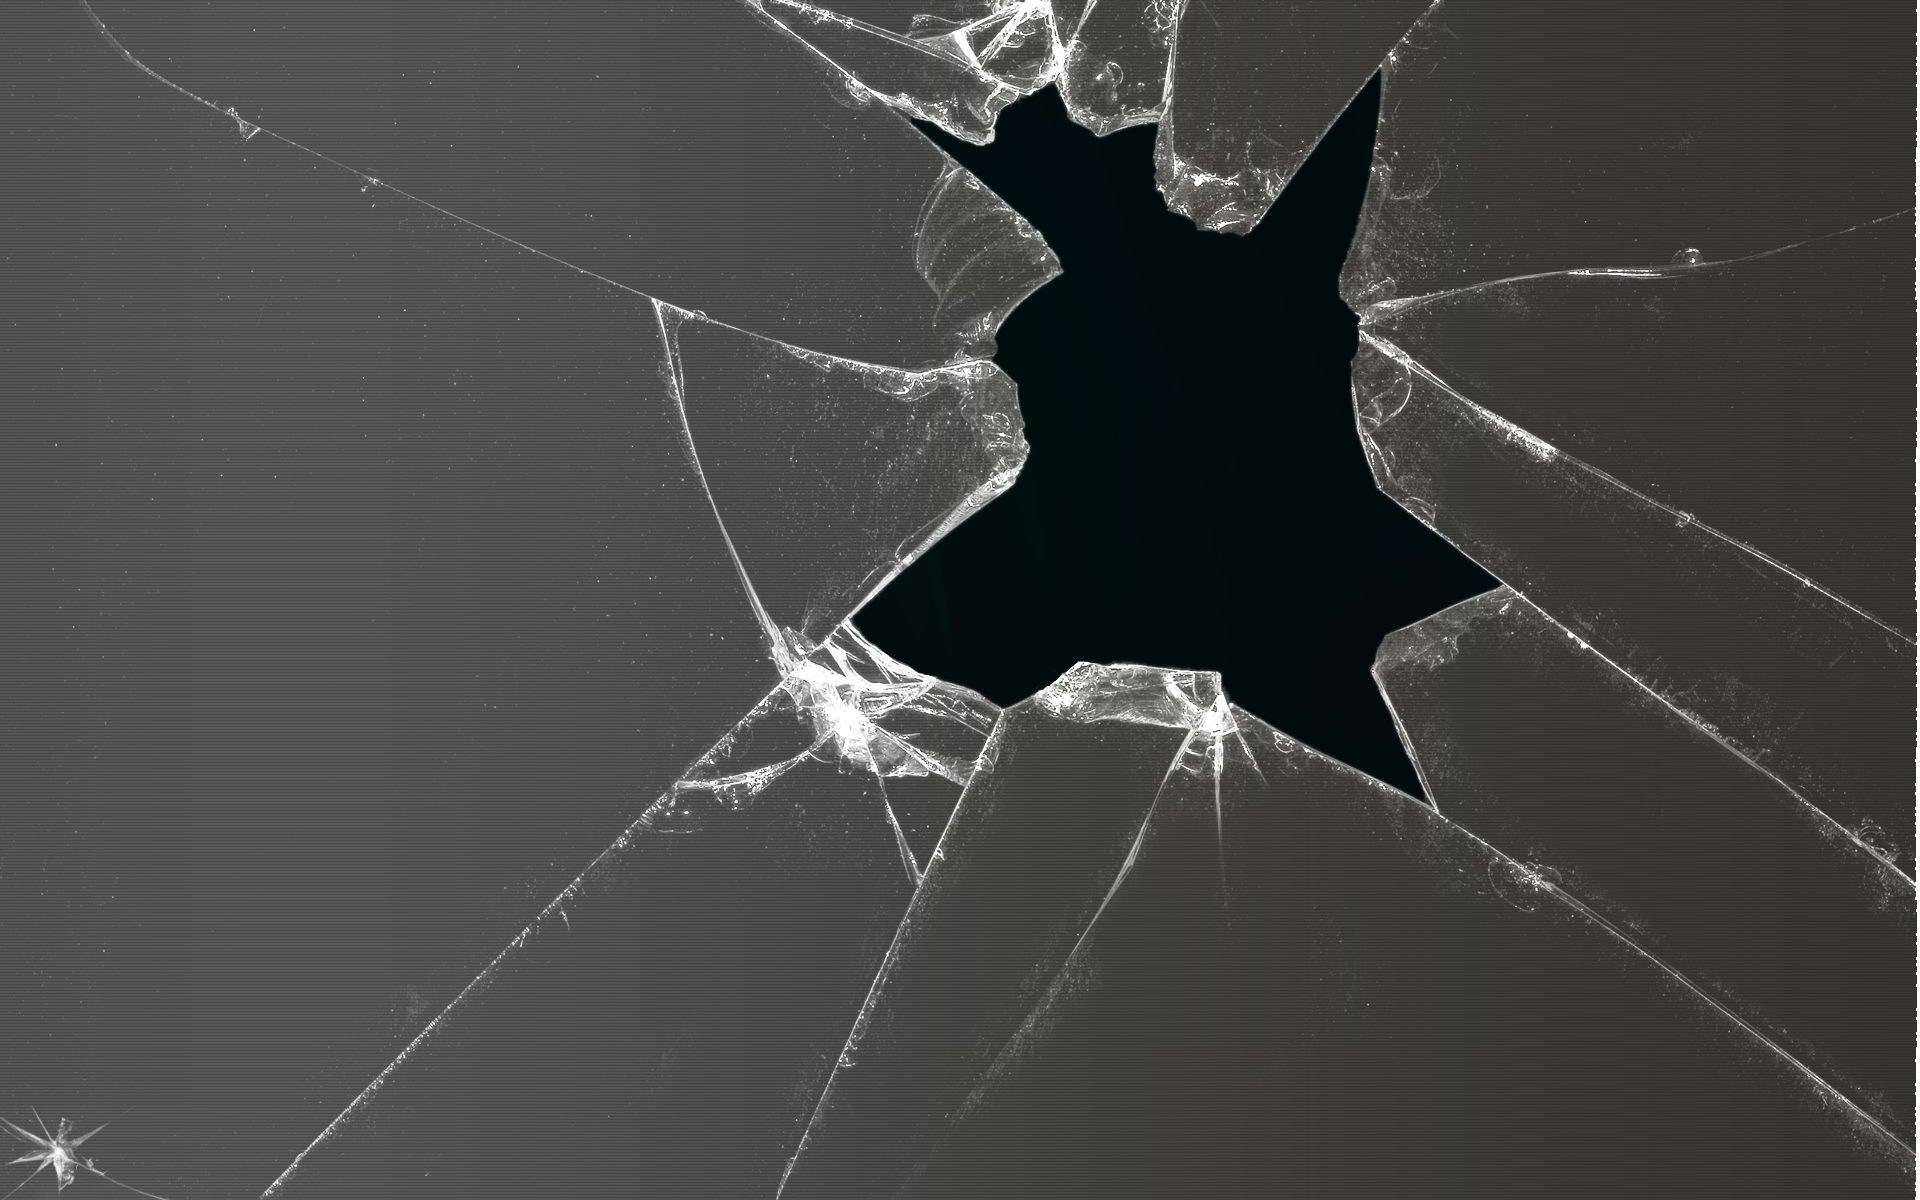 Broken Glass Full HD Wallpaper And Background Image